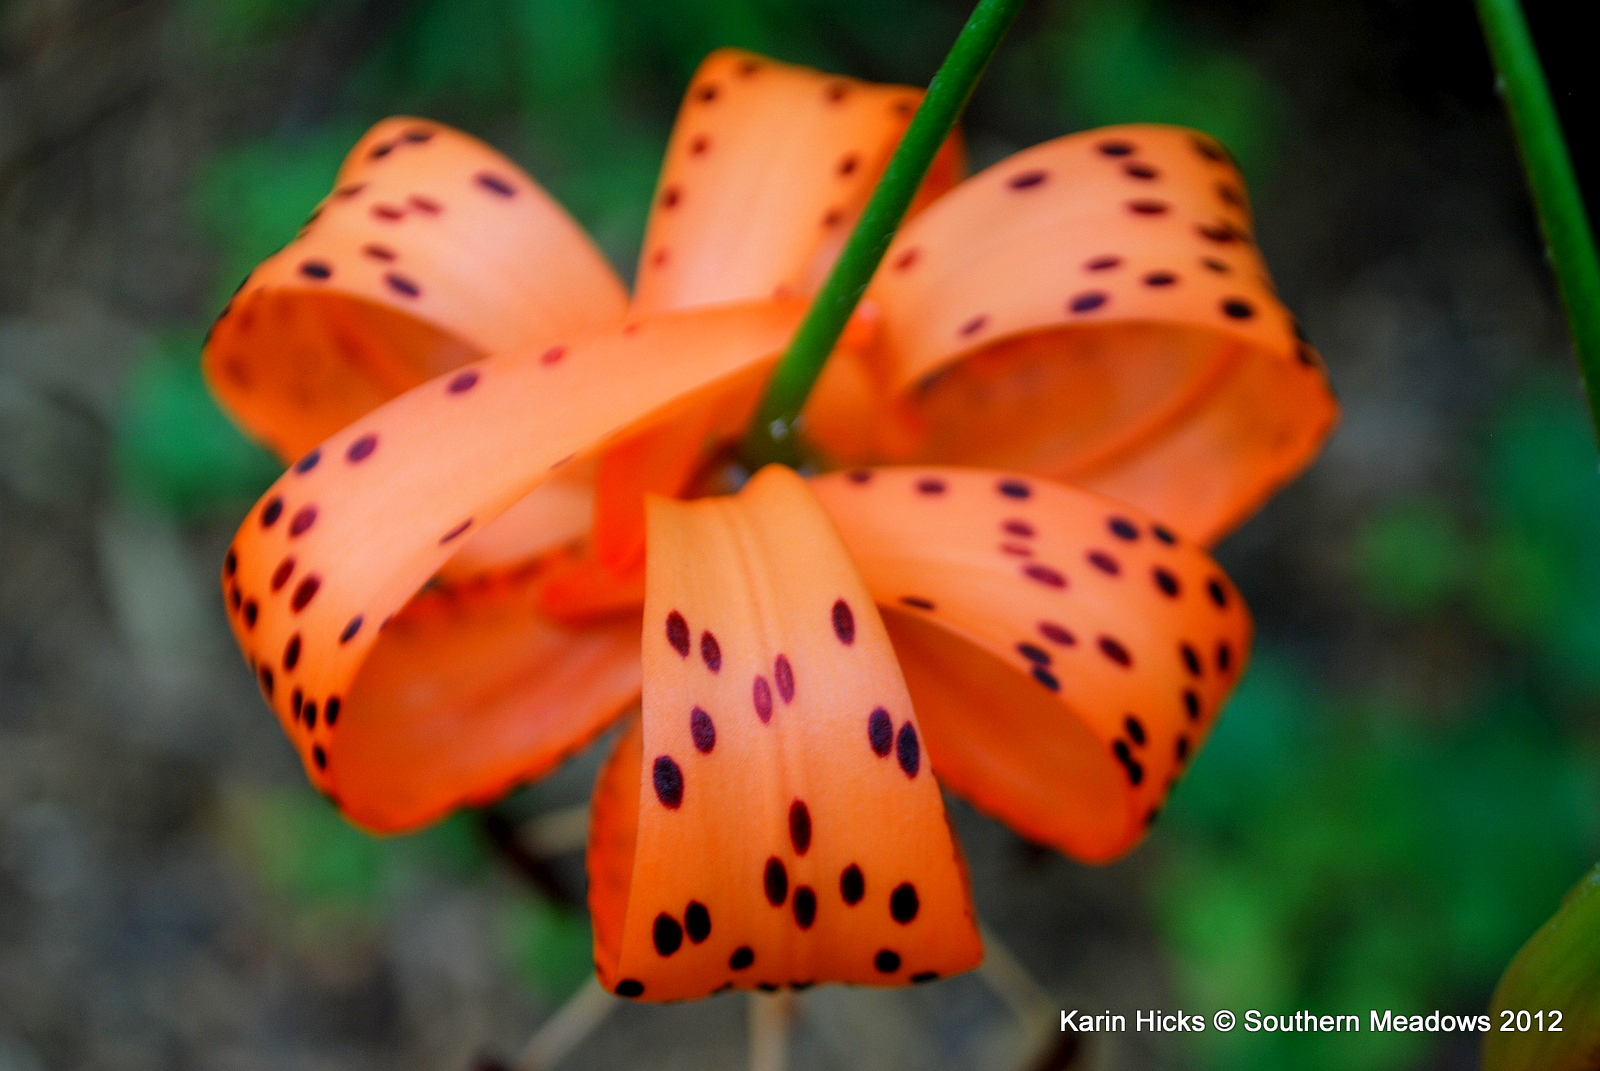 Southern meadows lily candy there is a superstition that says if you smell a tiger lily you will get freckles and i know the rest of that story izmirmasajfo Choice Image